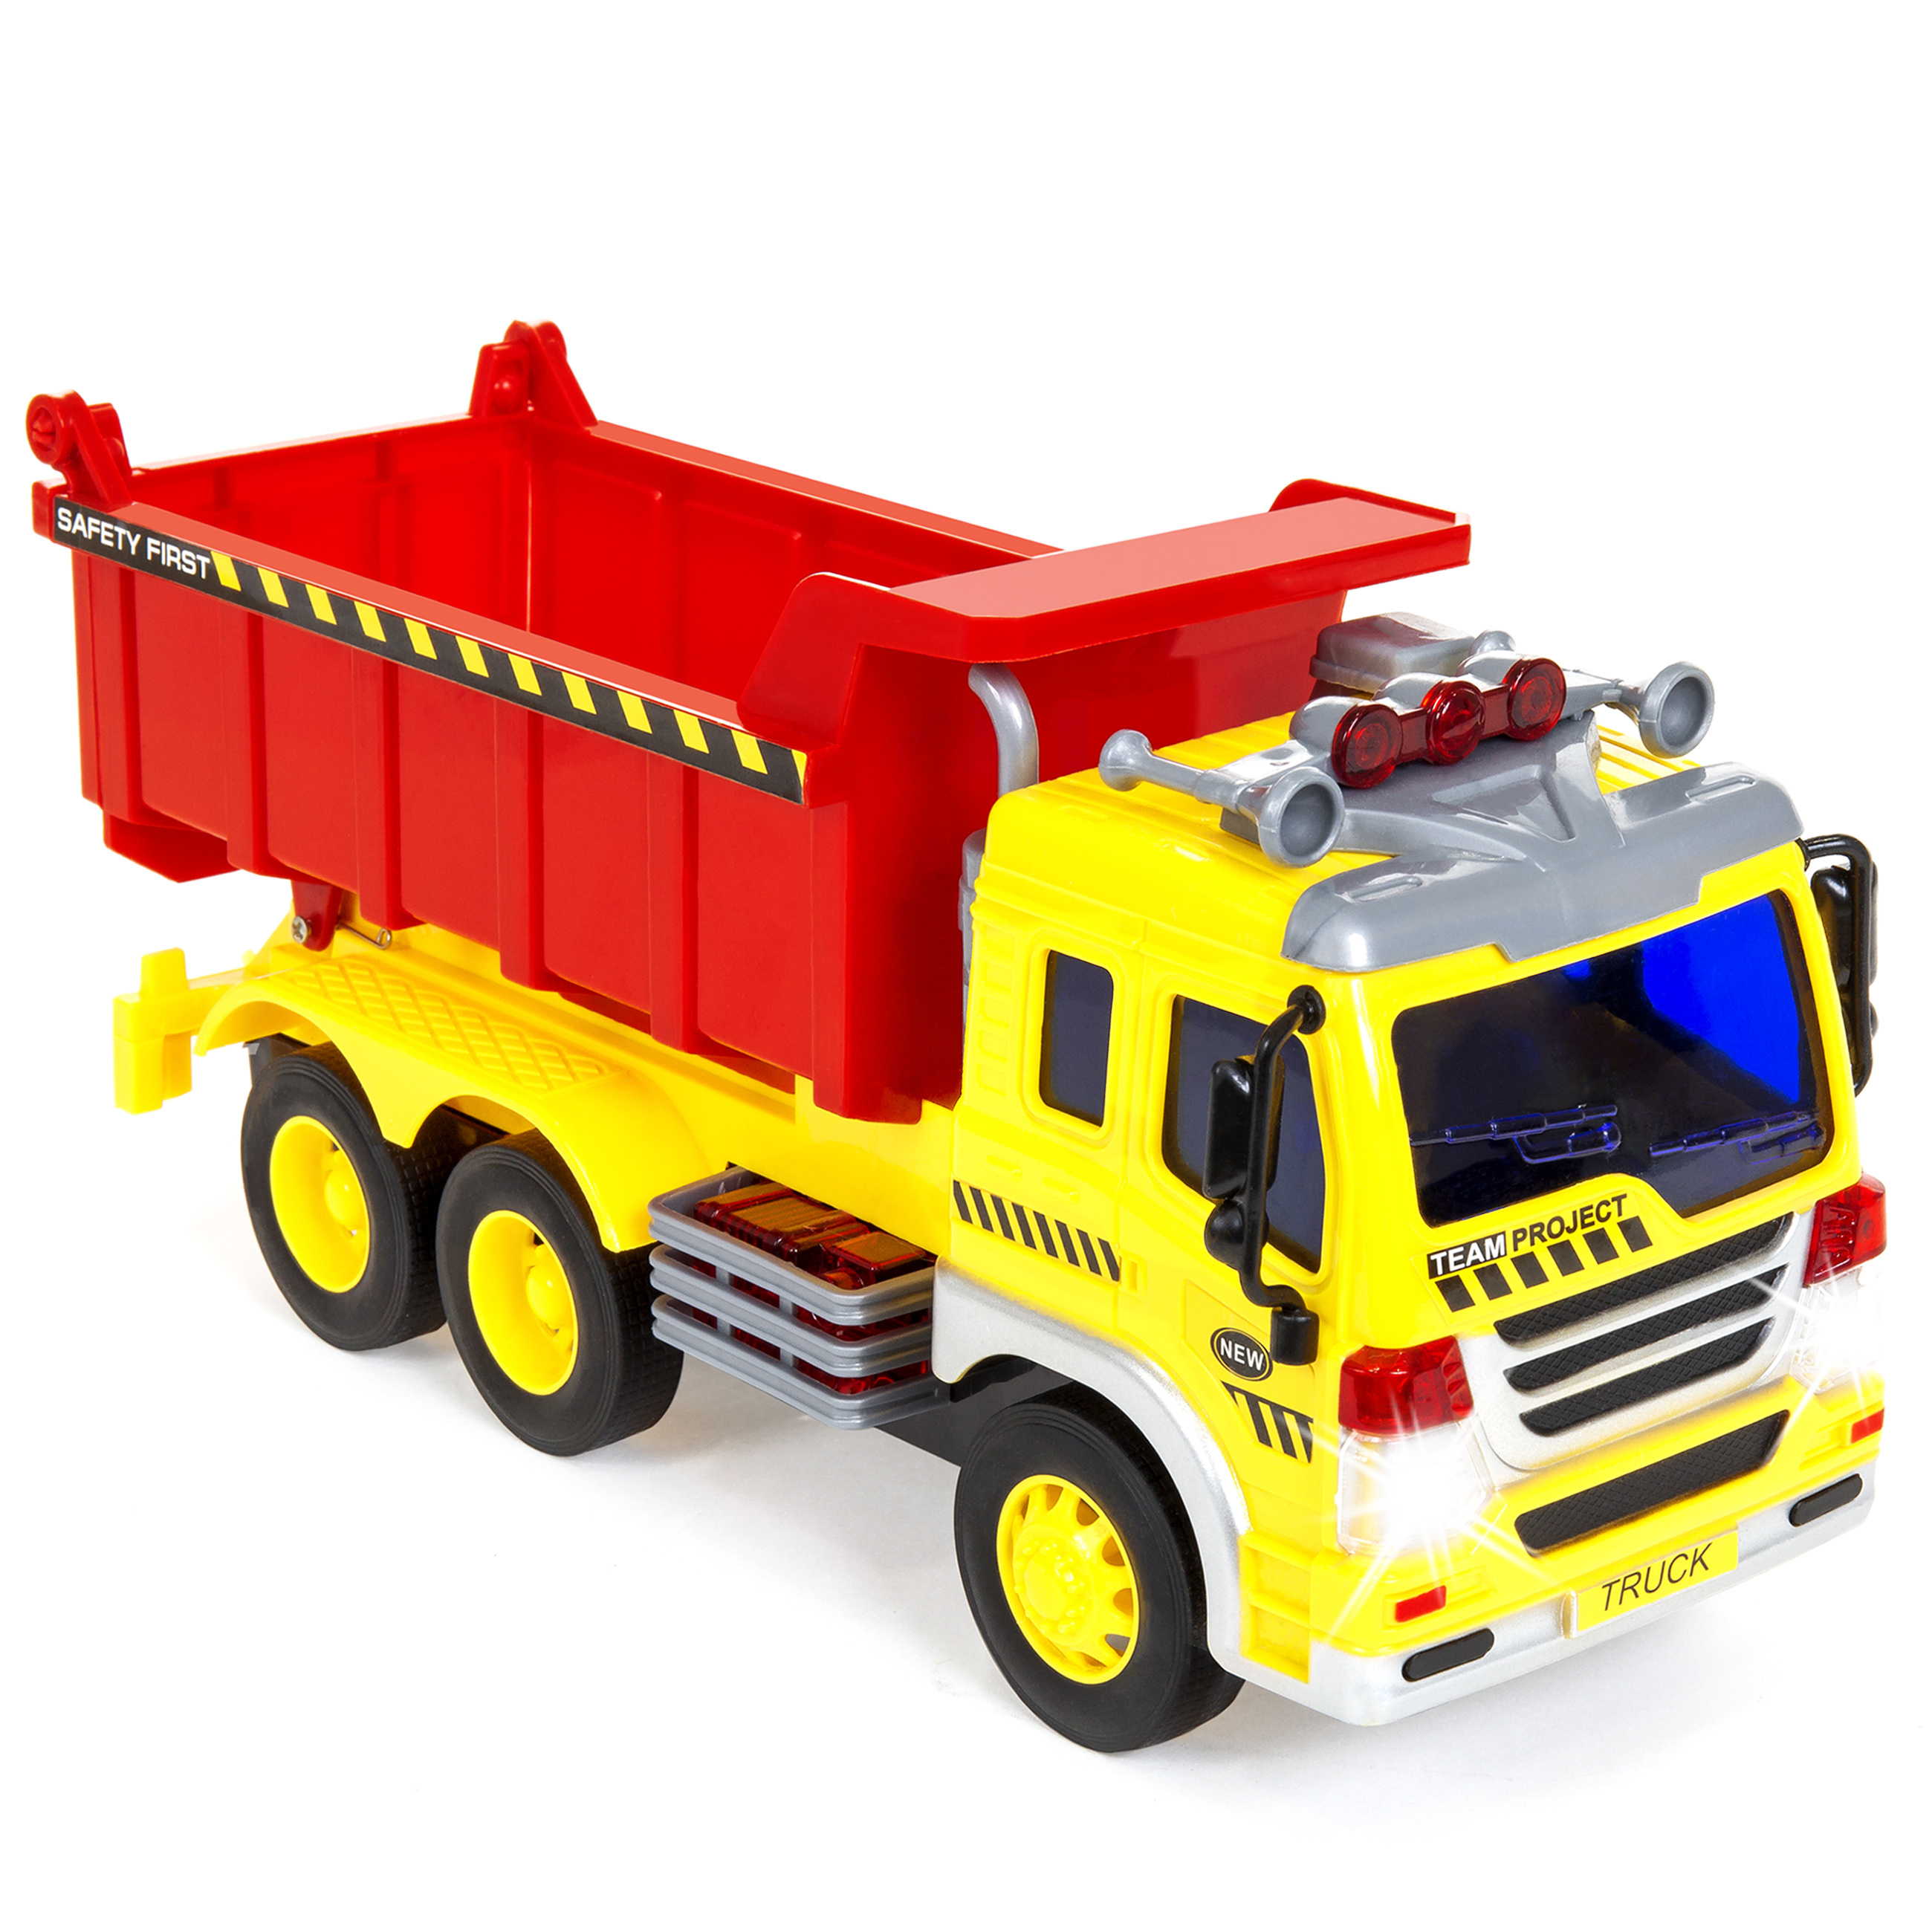 Best Choice Products 1 16 Scale Friction Powered Toy Dump Truck w  Lights and Sound by Best Choice Products